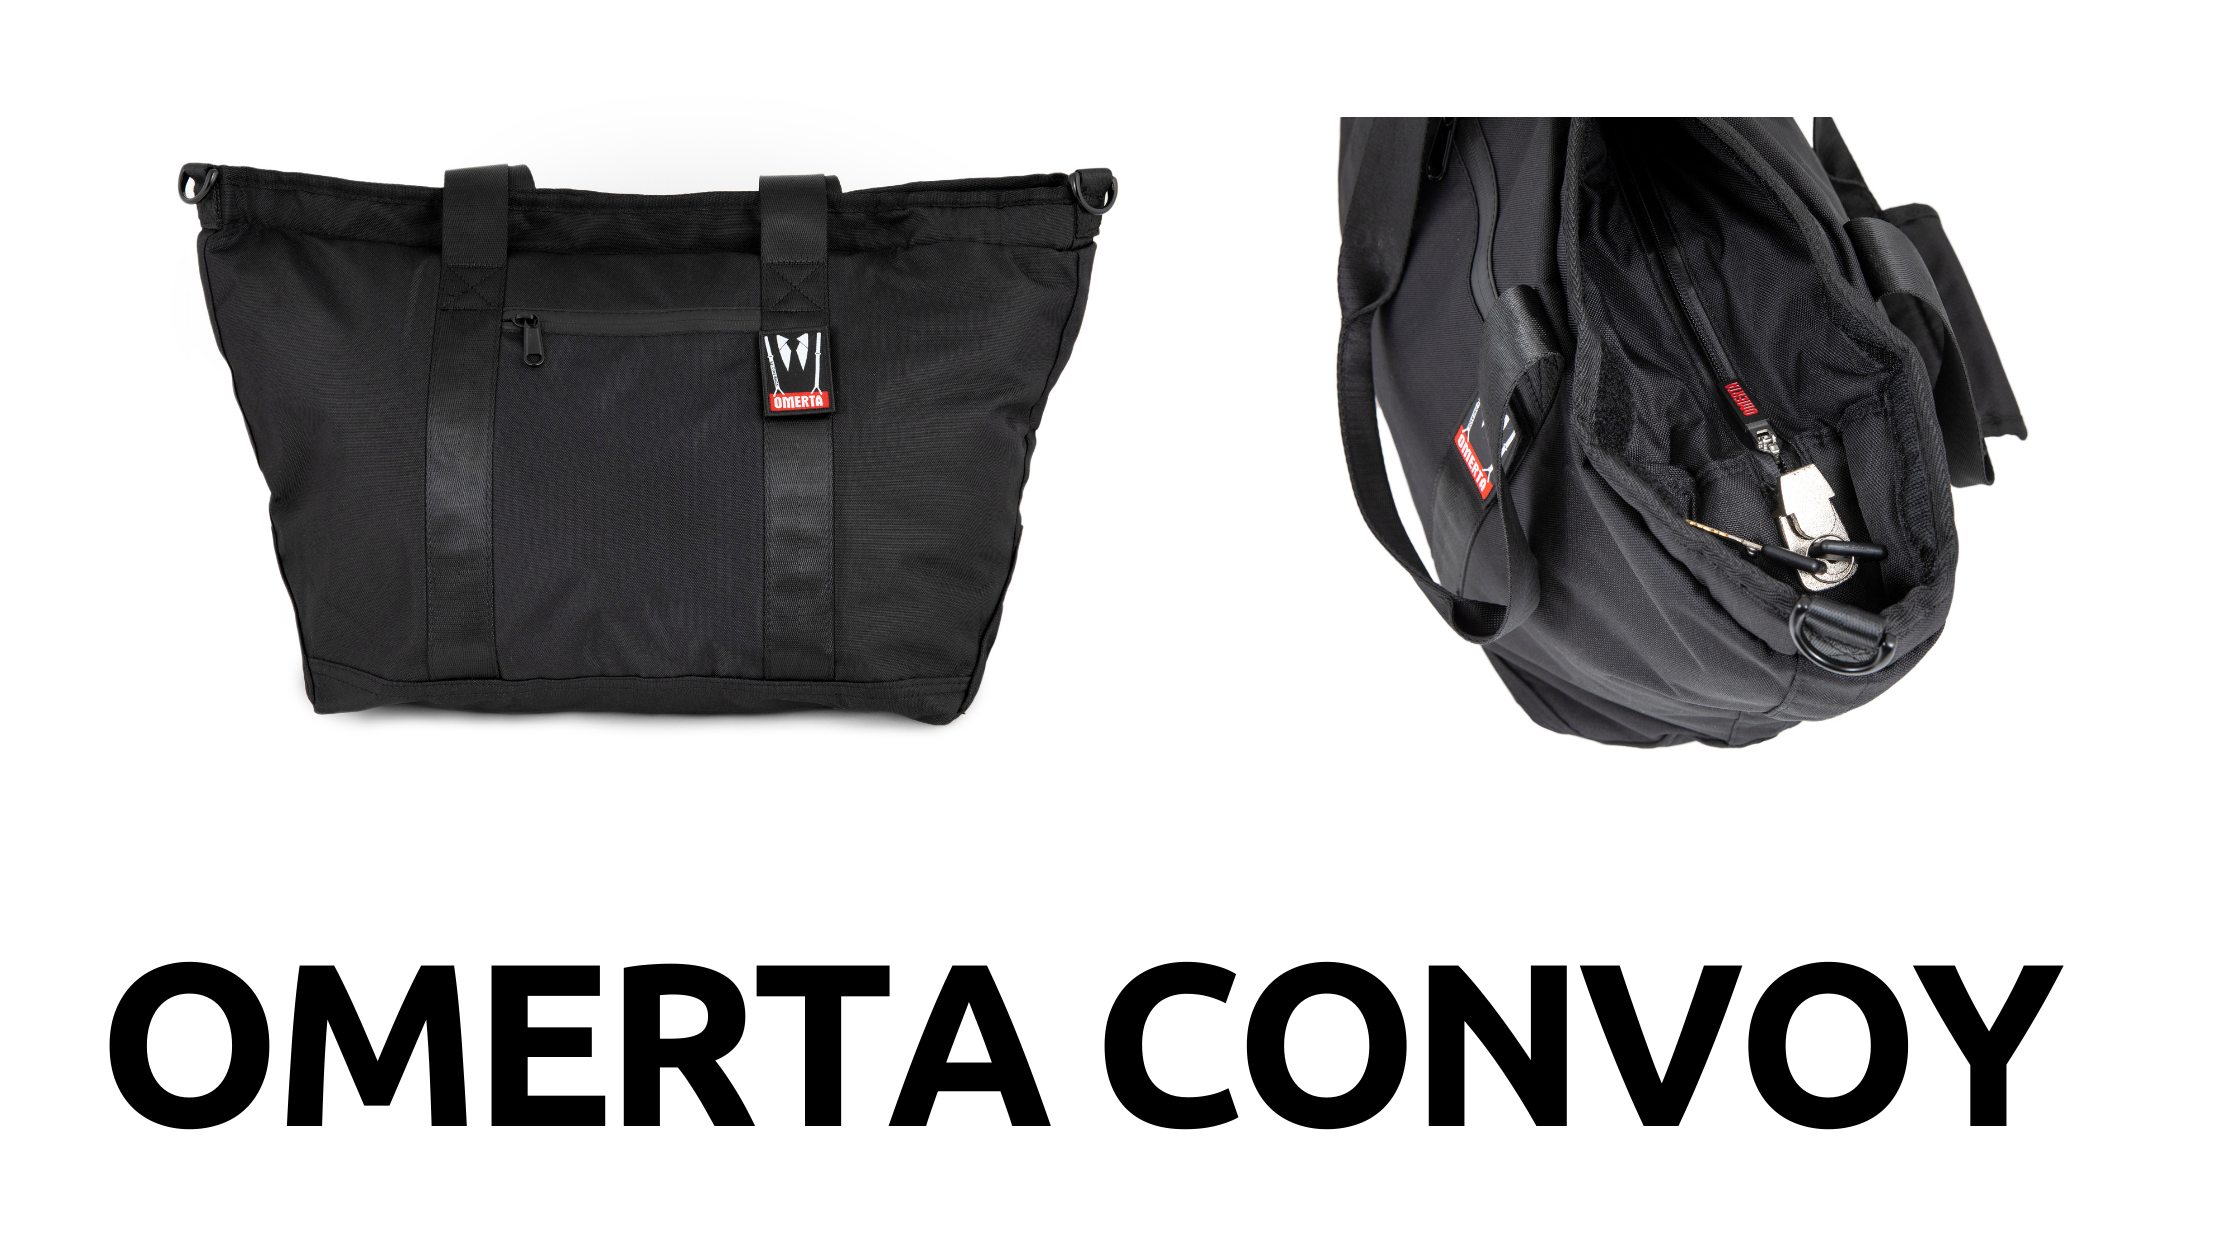 Omerta Convoy | Smell Proof | Lockable | Tote